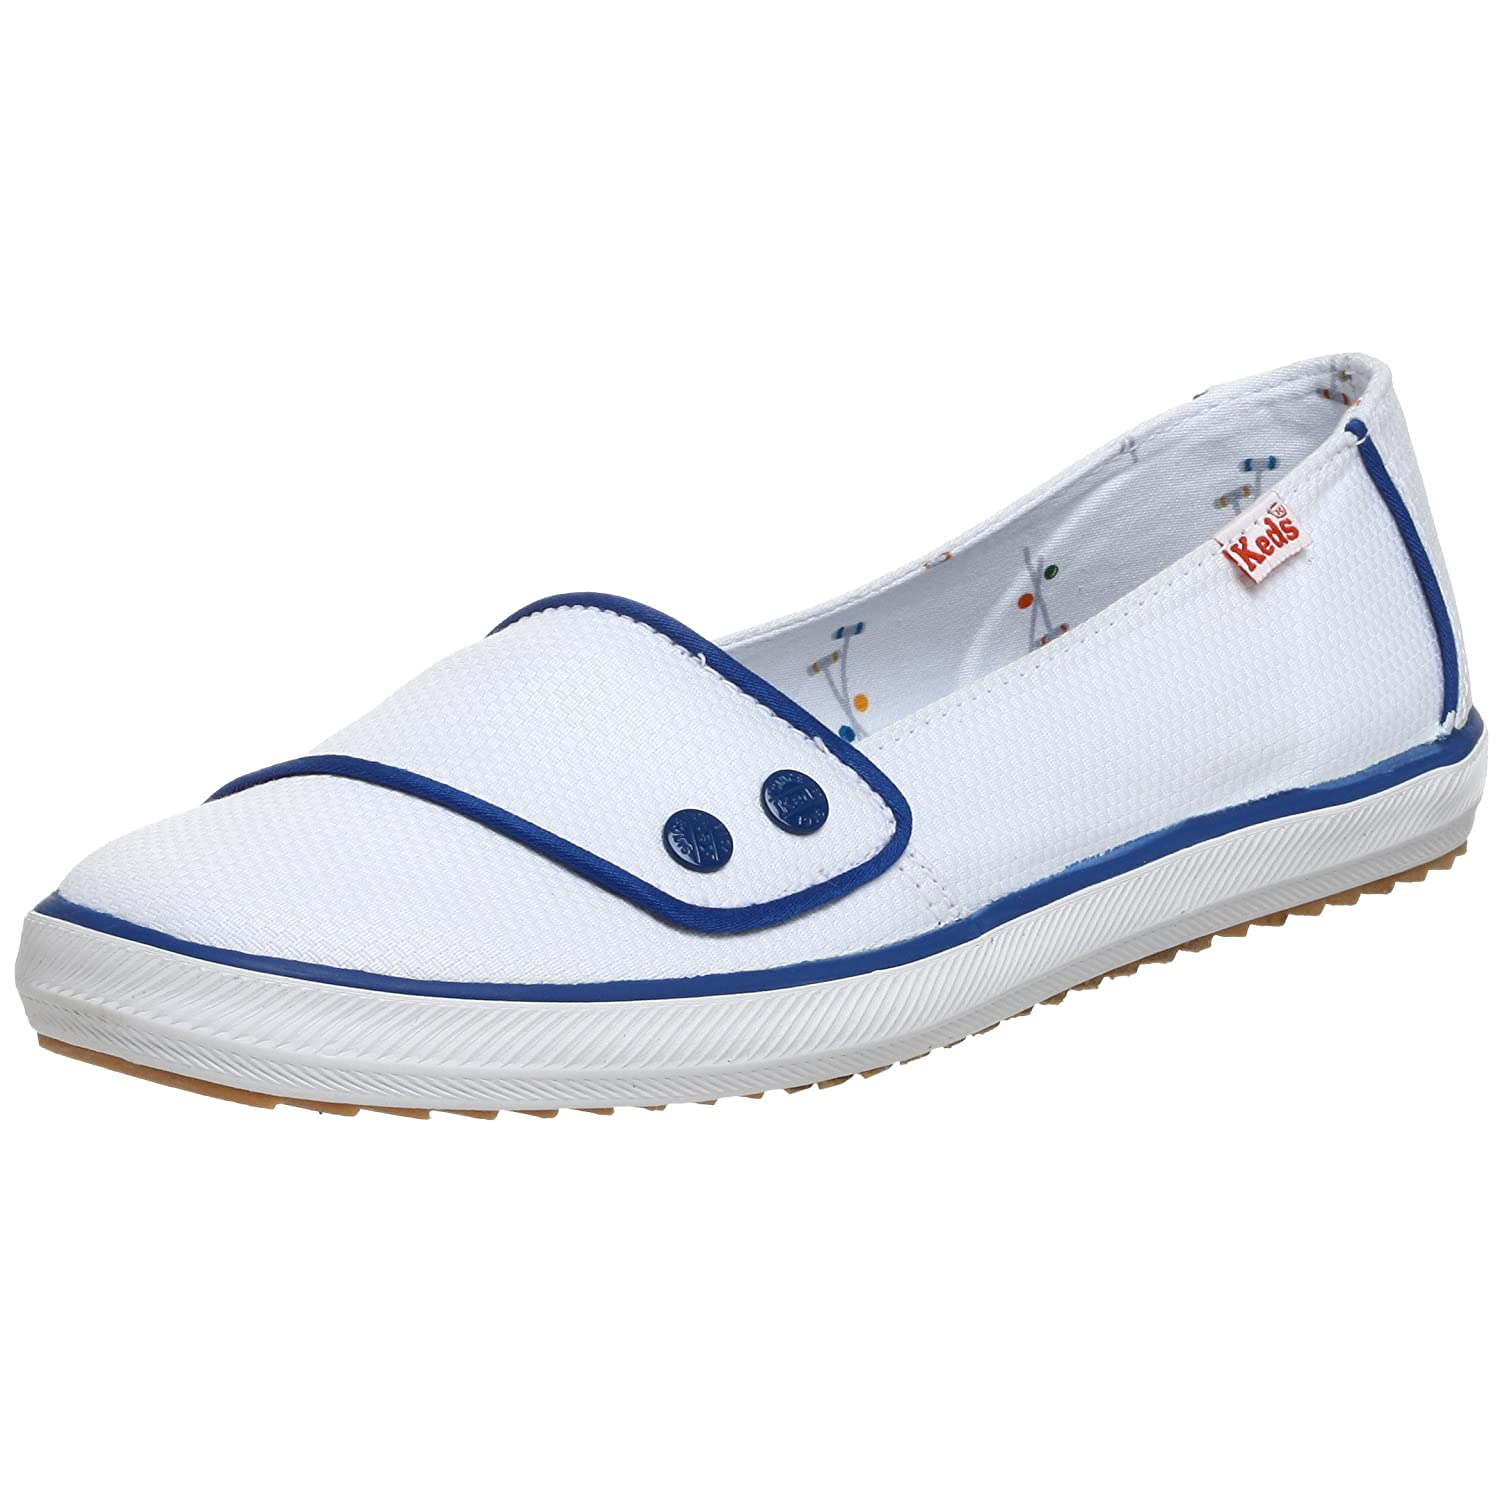 Keds Women's Champion Chatham Strap Mini Slip-on - Free Overnight Shipping & Return Shipping: Endless.com :  slip on chatham retro keds